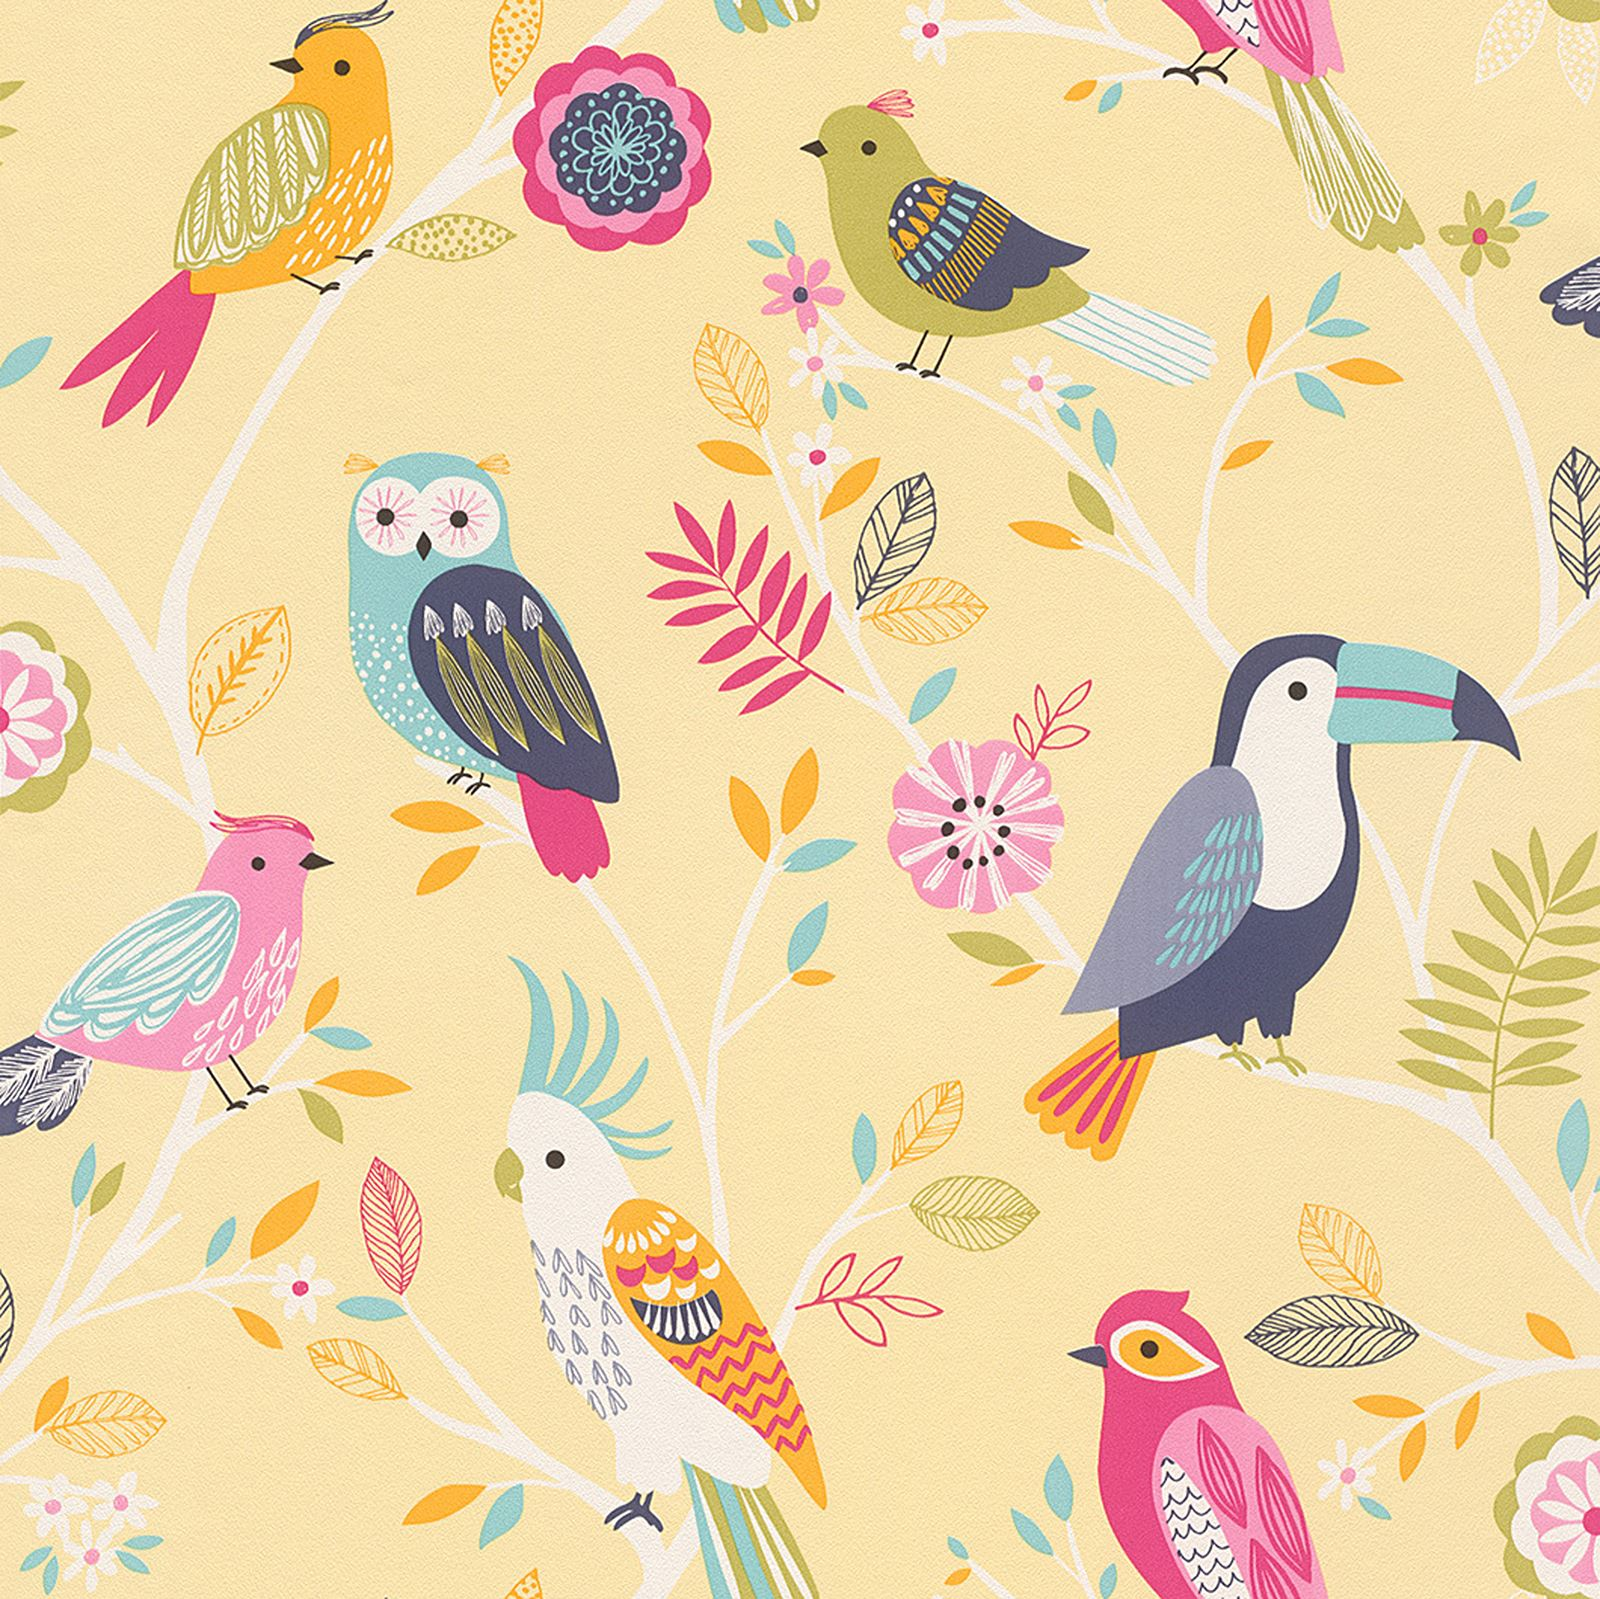 RASCH BIRDS WALLPAPER - YELLOW, PINK, NATURAL HOME WALL DECOR ...